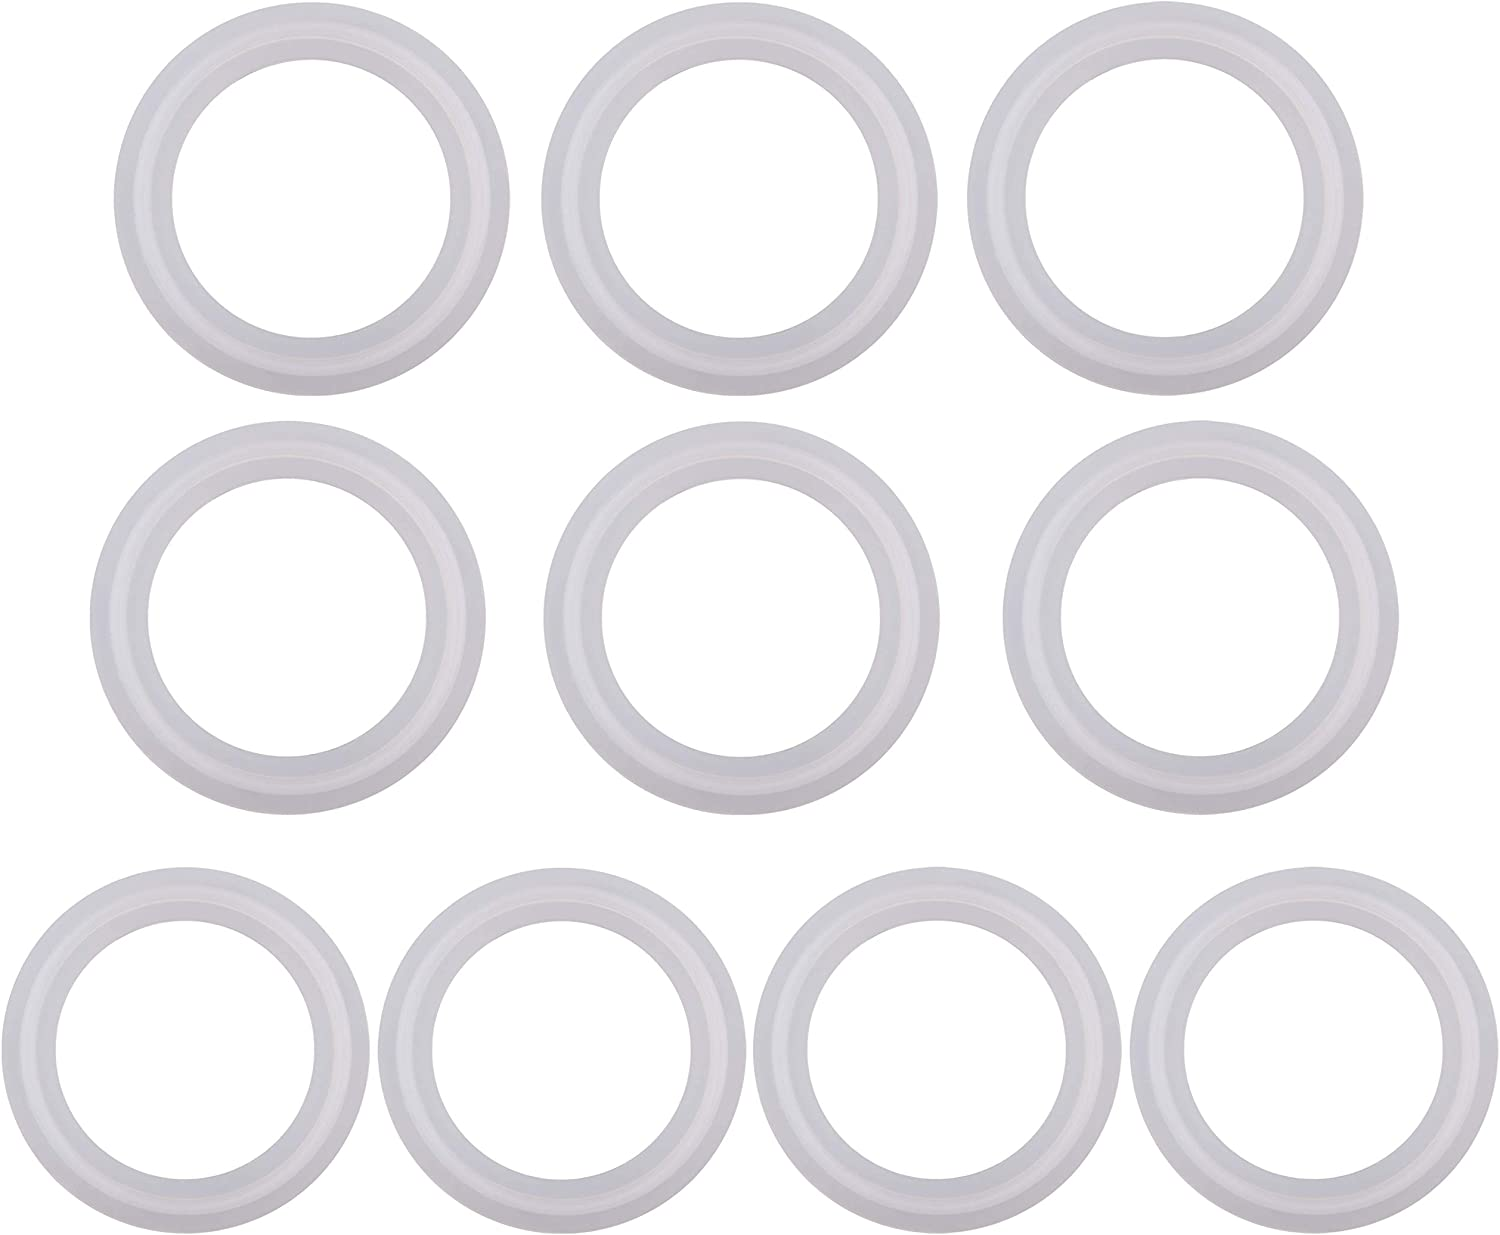 1.5 Tri clamp Size: OD: 50.5mm, ID: 34mm Dernord Silicone Gasket Tri-Clover Tri-clamp O-Ring Pack of 20